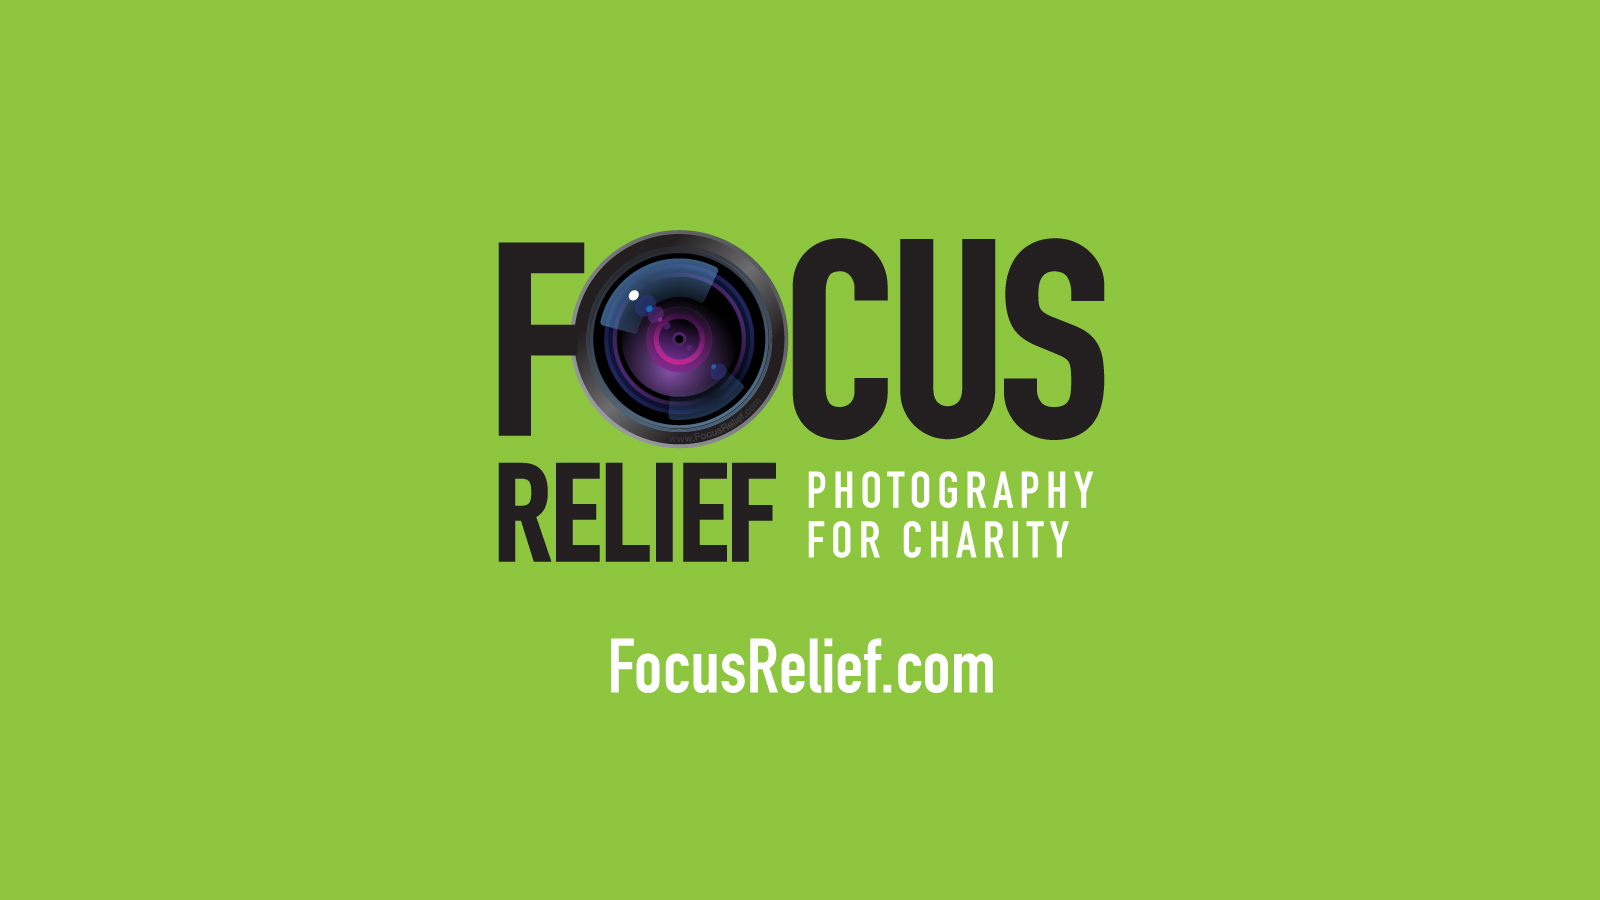 Focus Relief Logo with URL and Focus Green Background